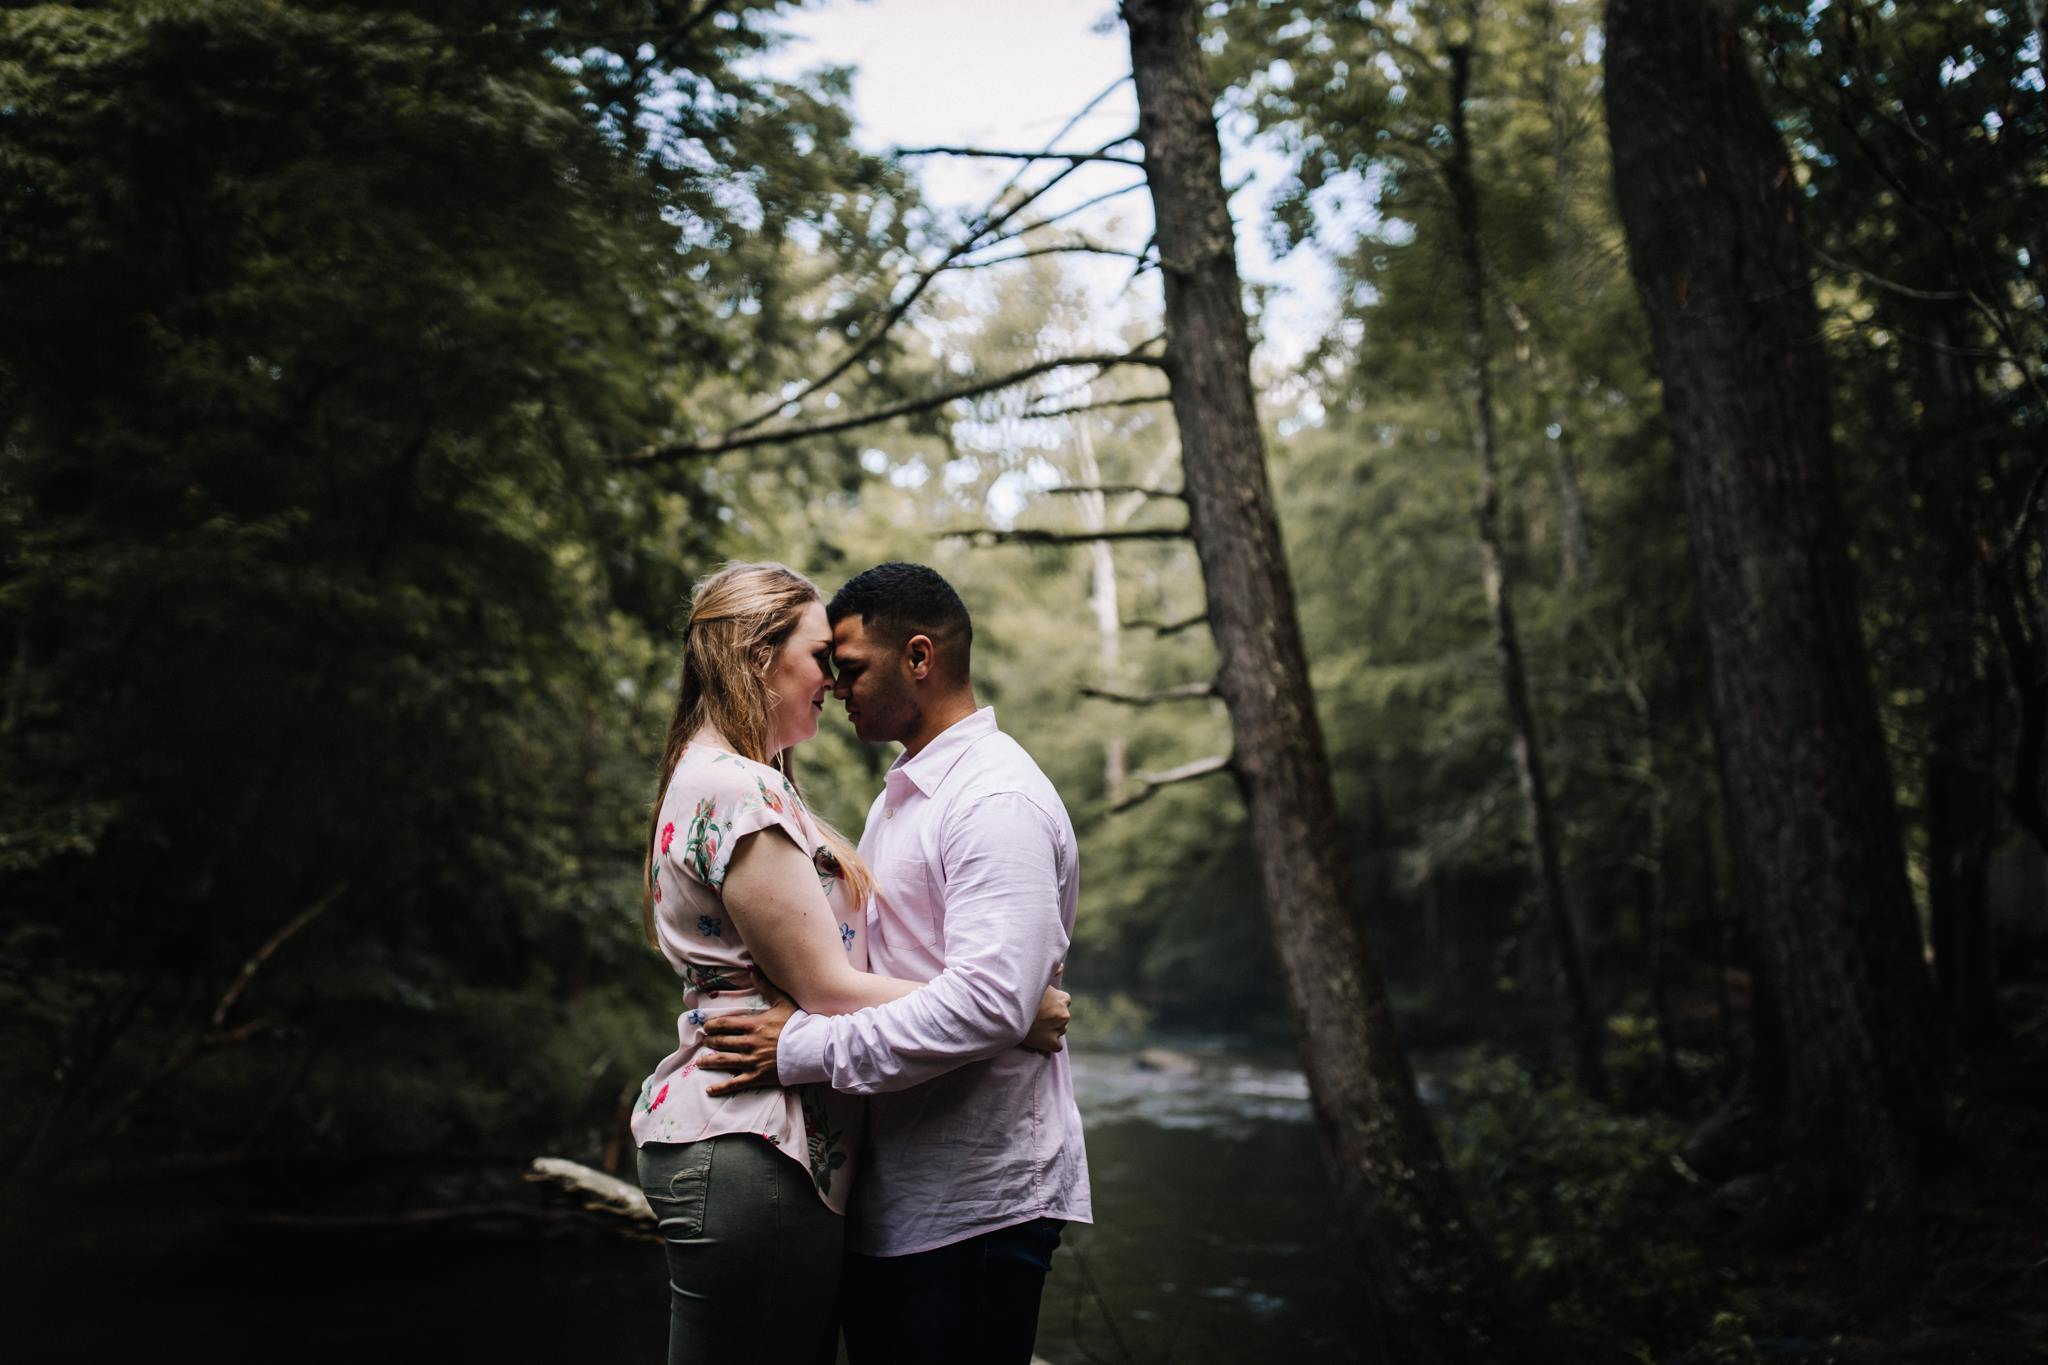 billie-shaye style photography - www.billieshayestyle.com - smokey mountain cades cove summer rain engagement session - gatlinburg tennessee-14.jpg